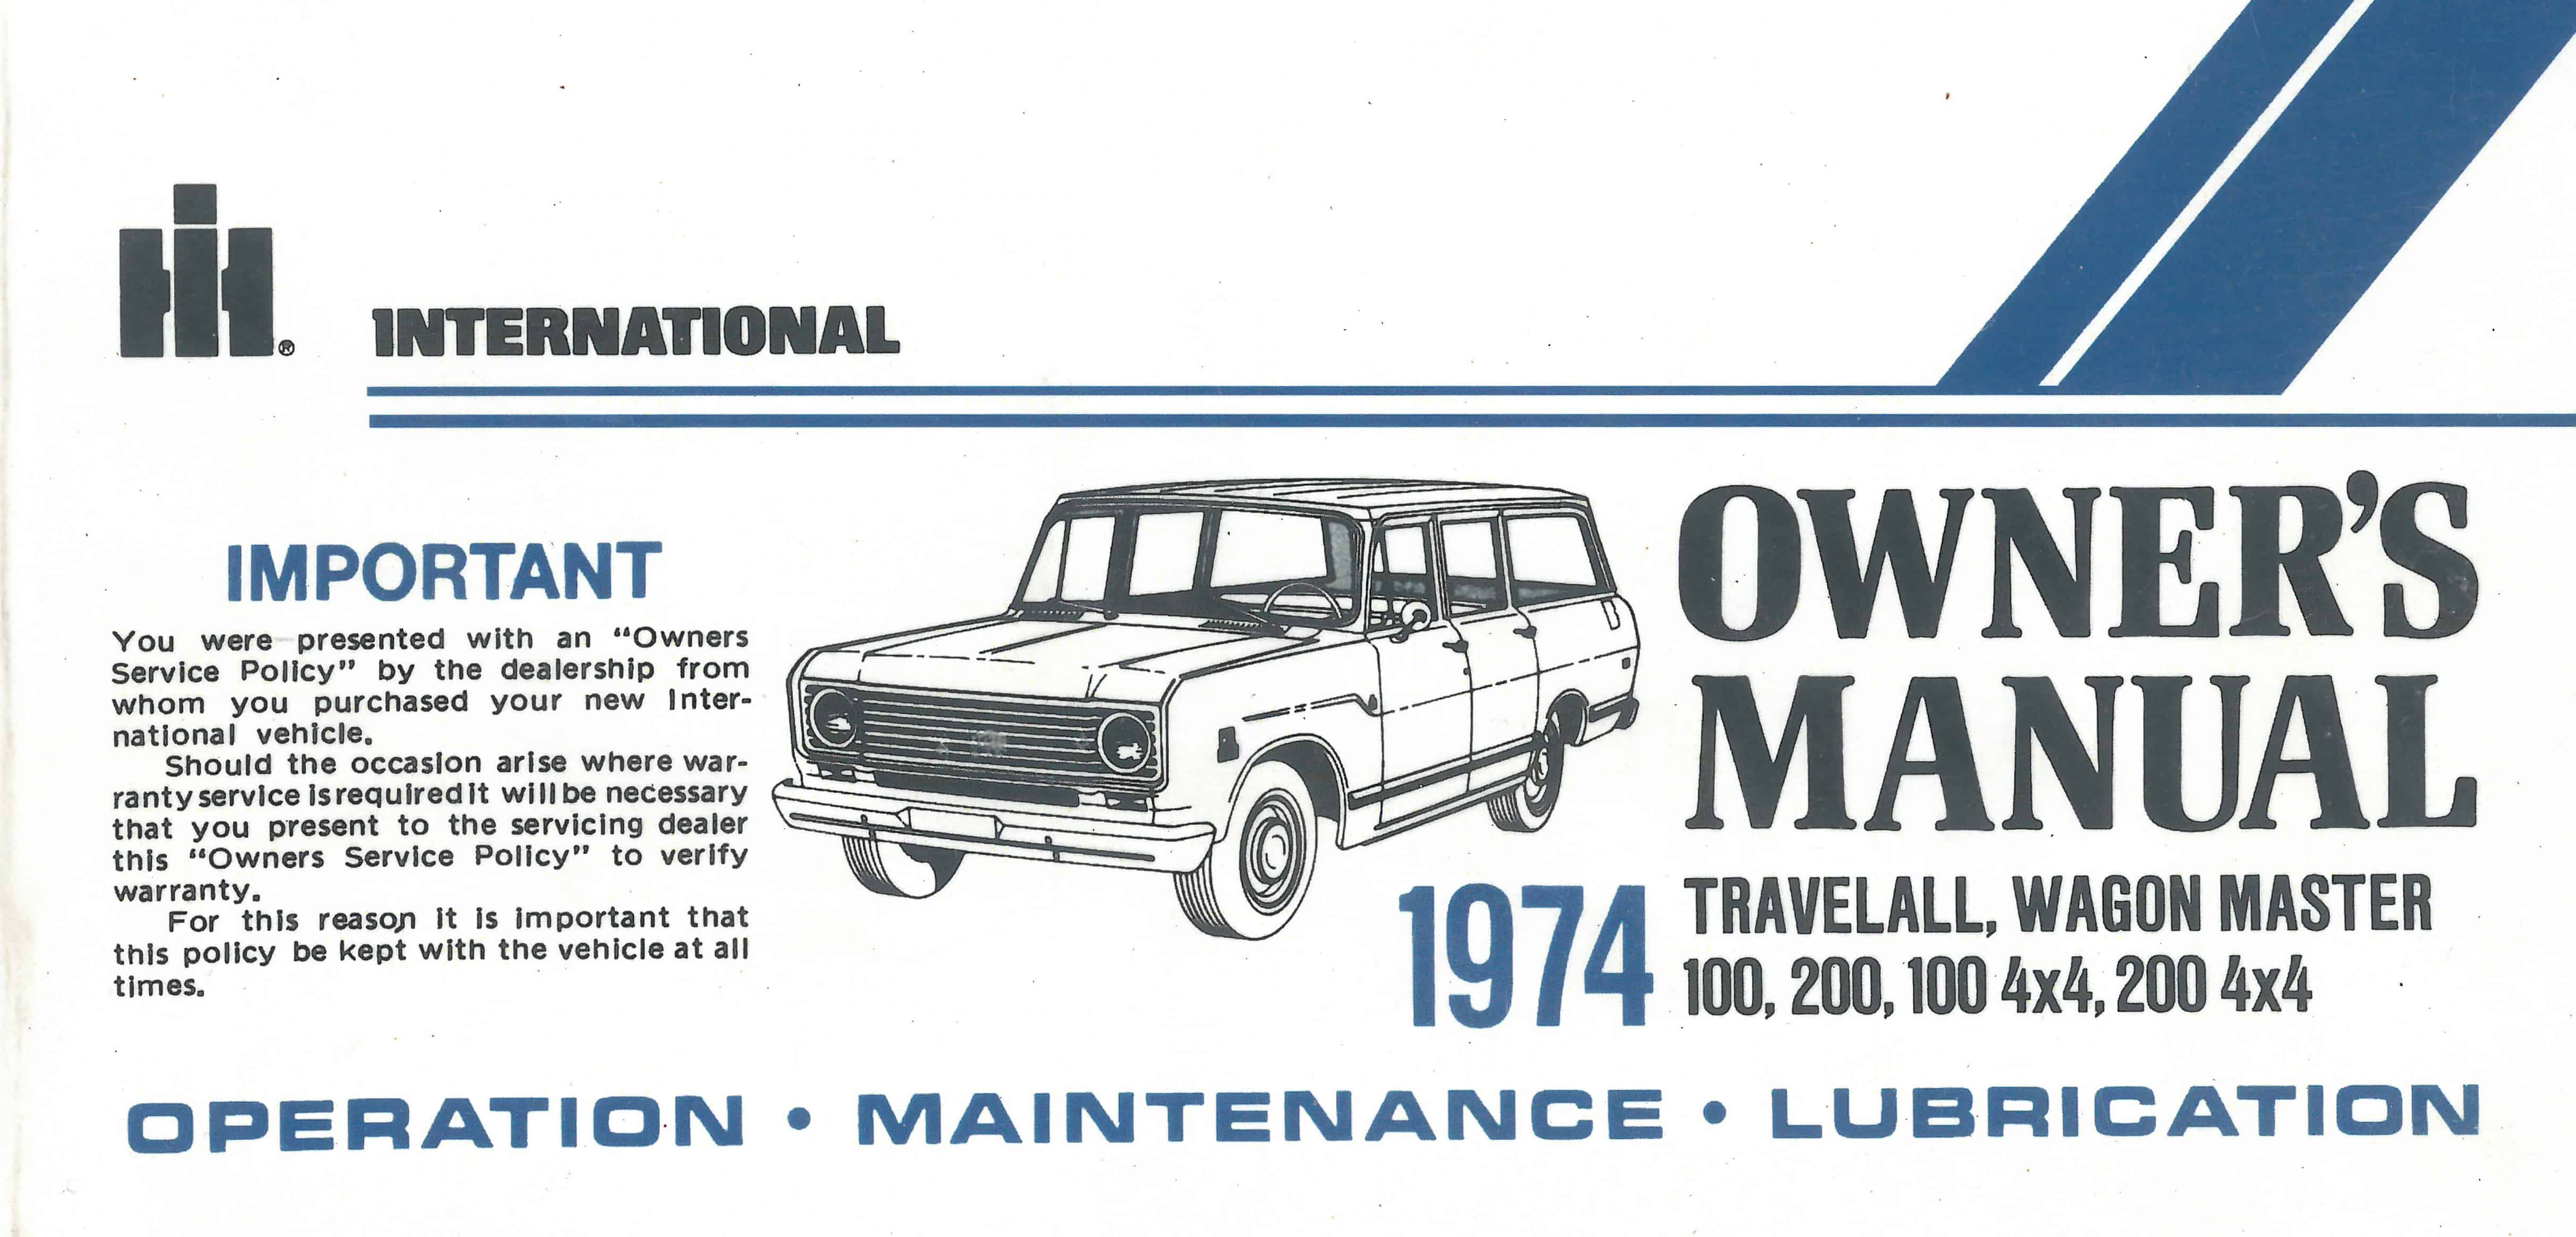 Owners operating manual